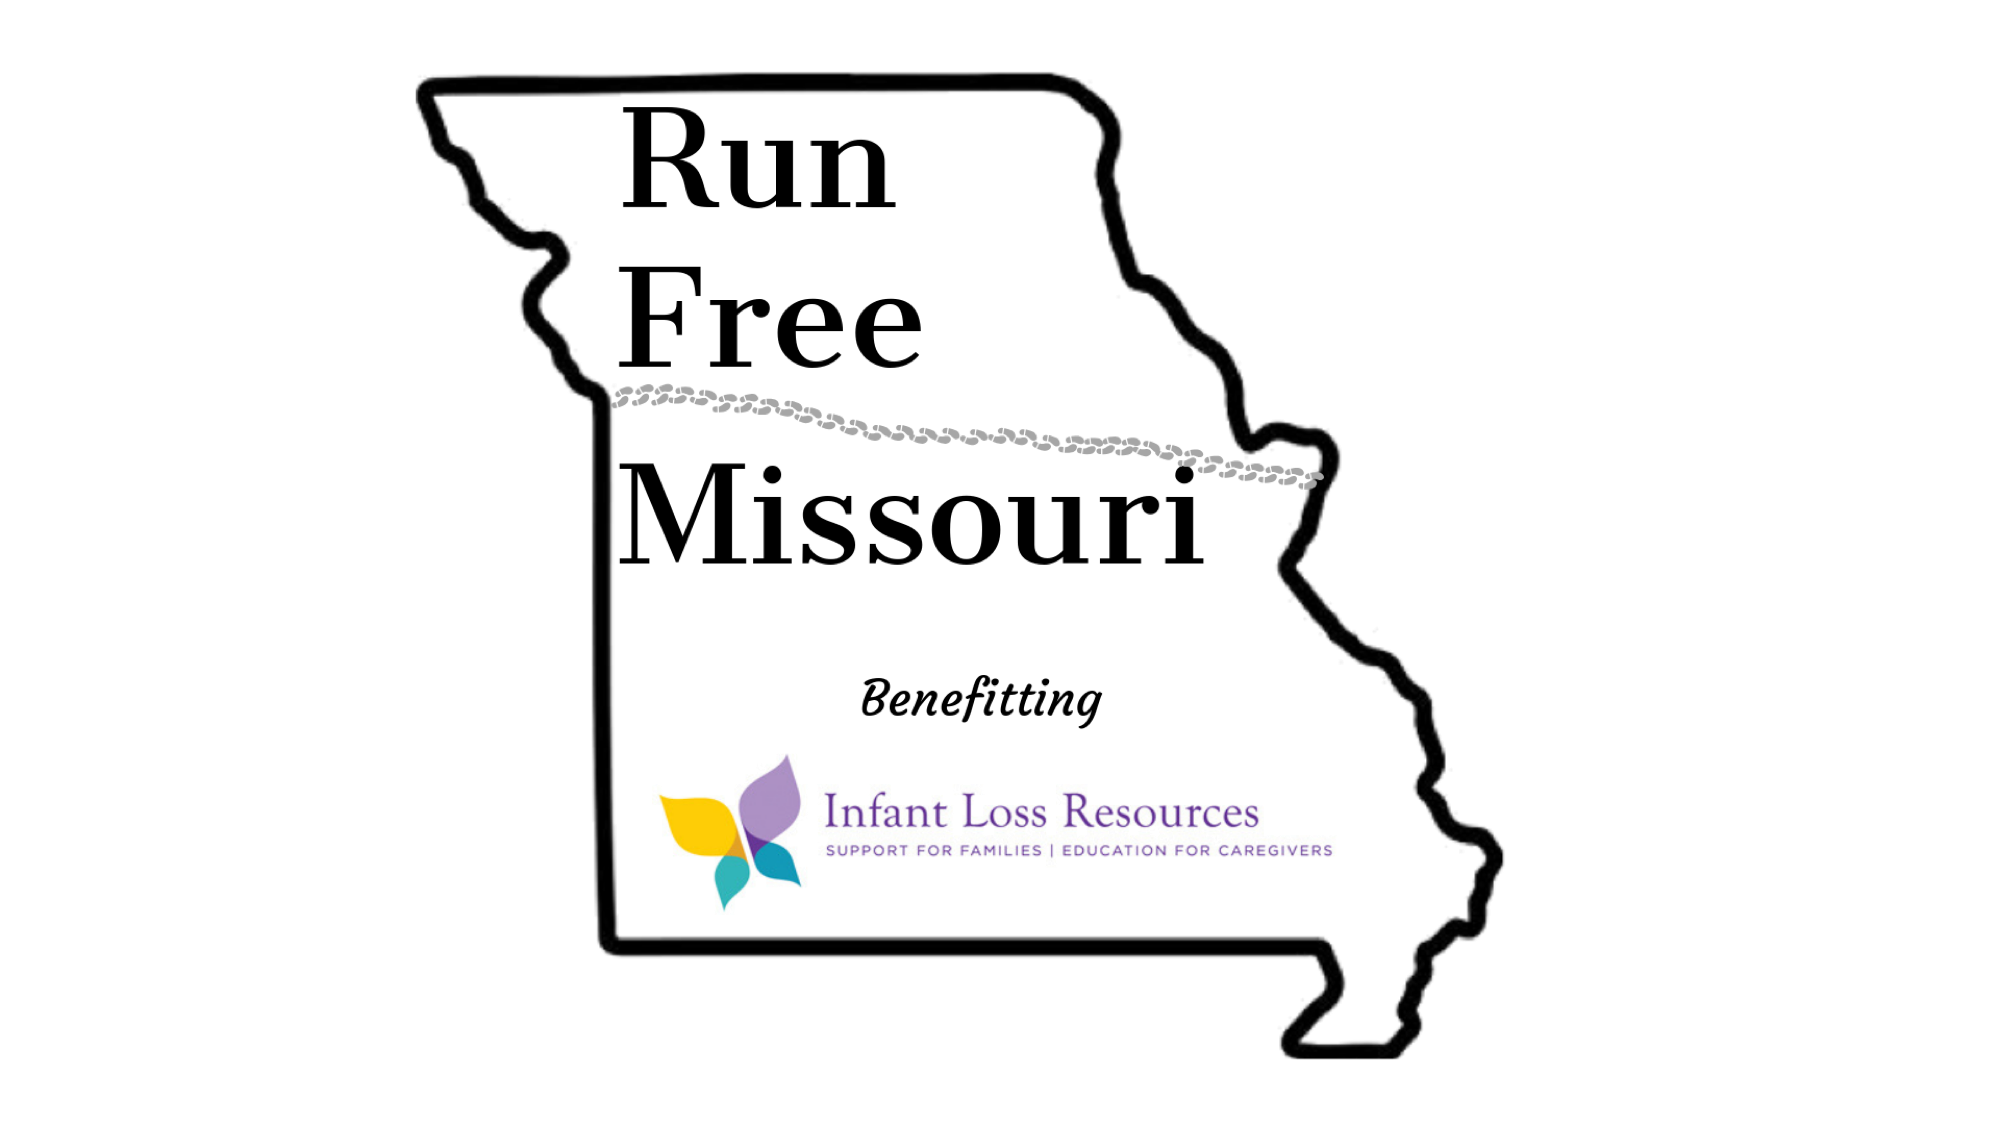 Run Free Missouri Transparent.png